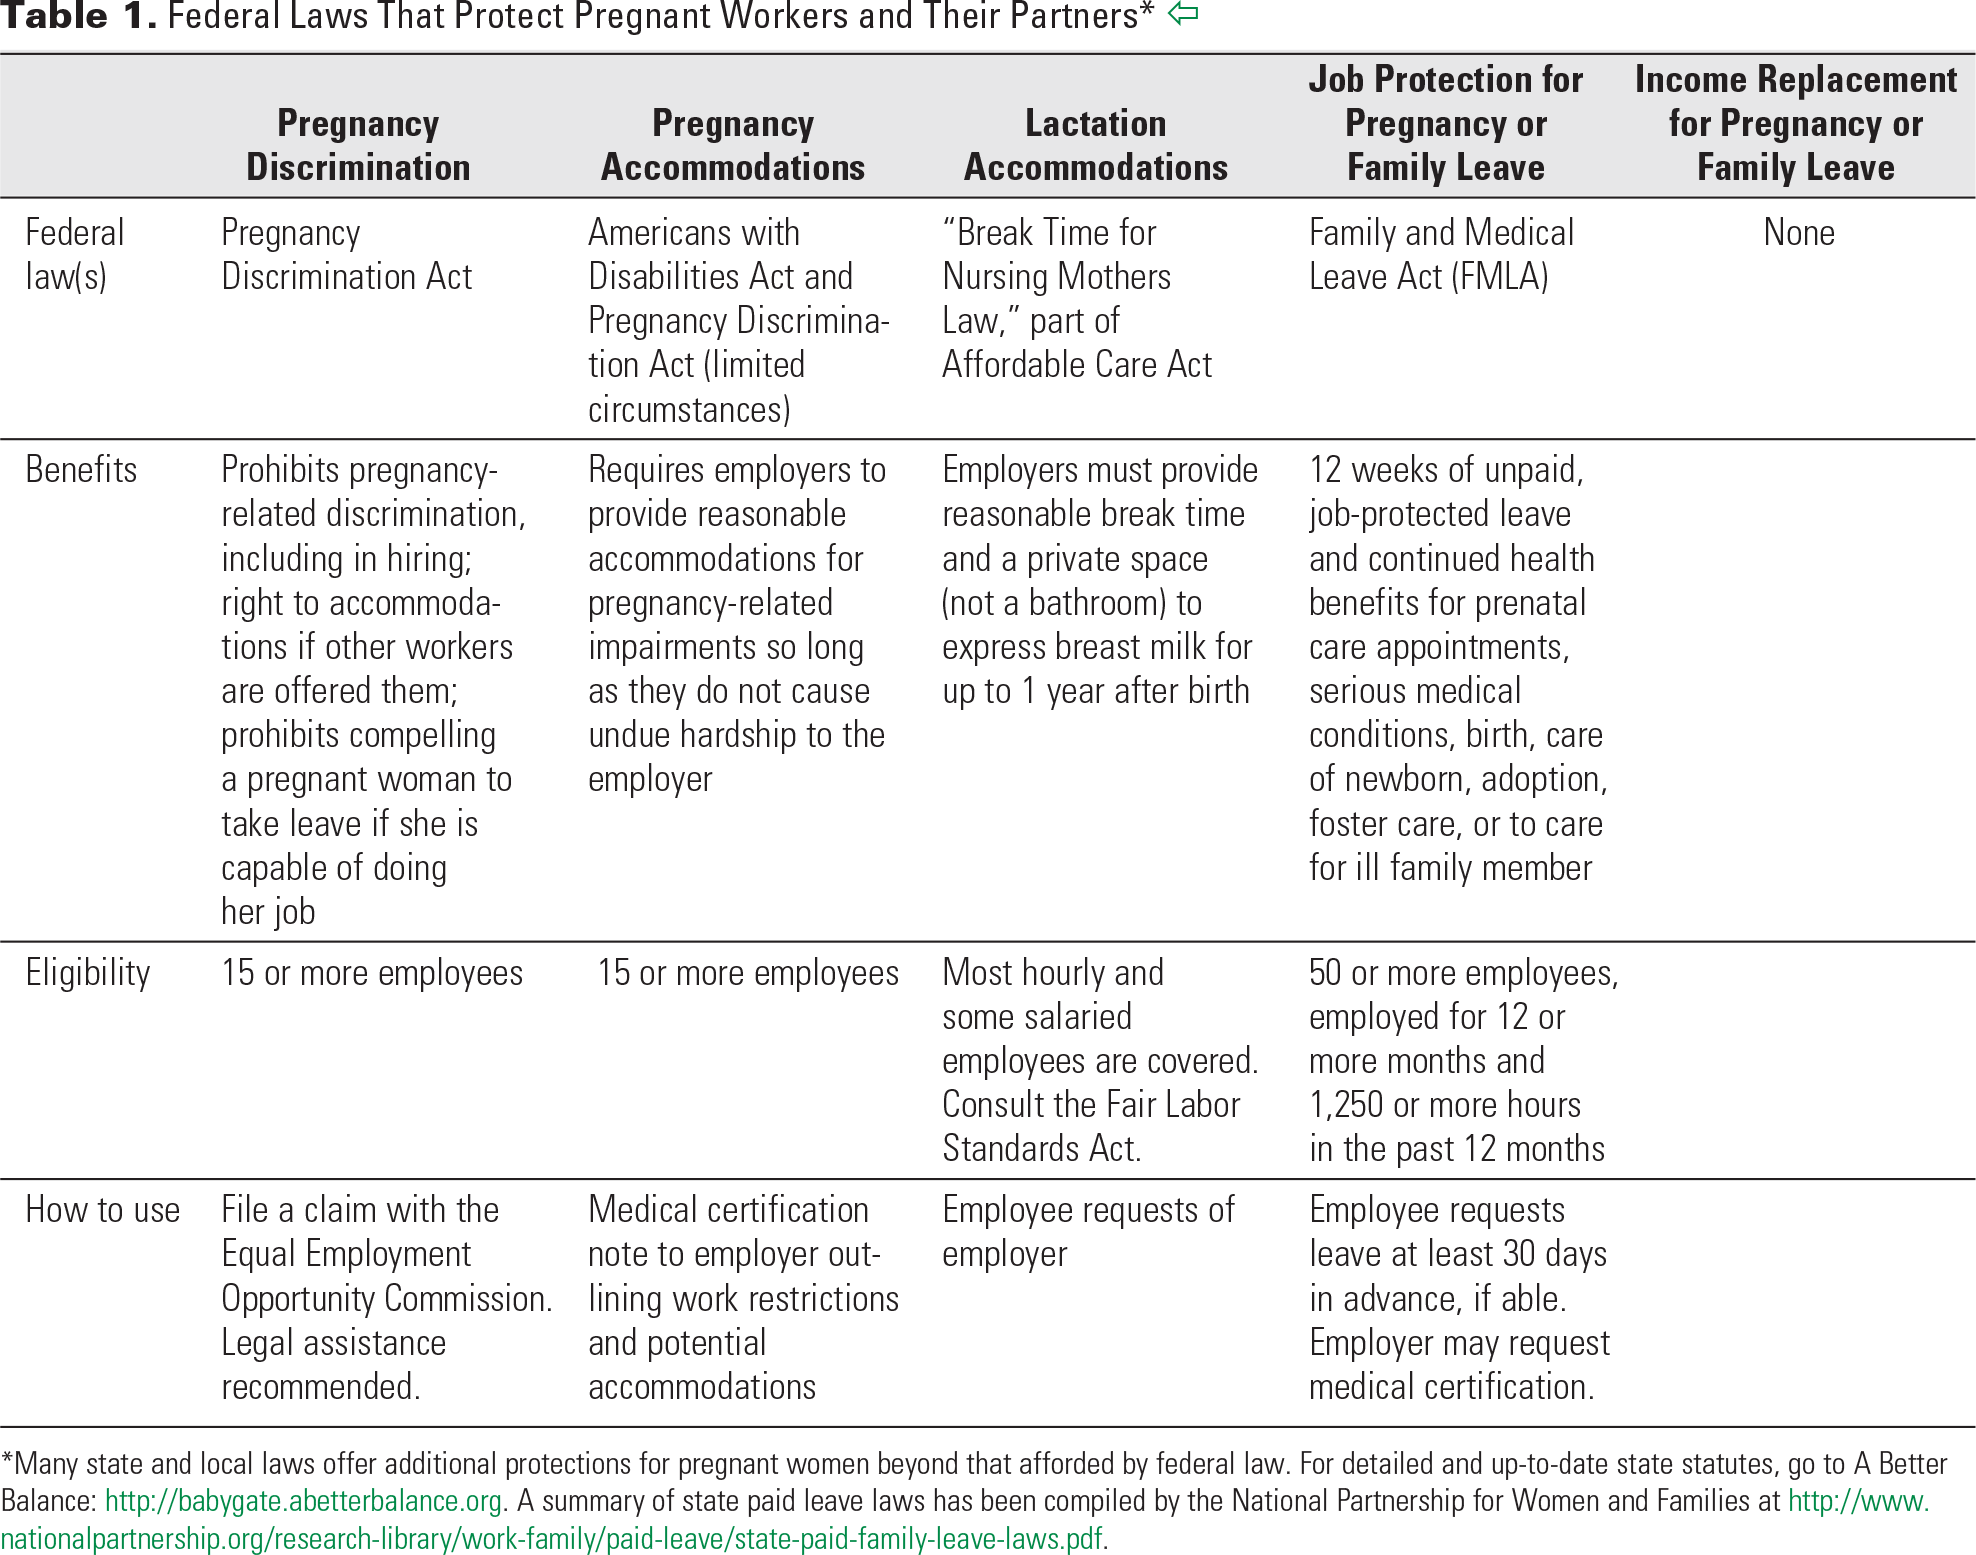 Table 1. Federal Laws That Protect Pregnant Workers and Their Partners*